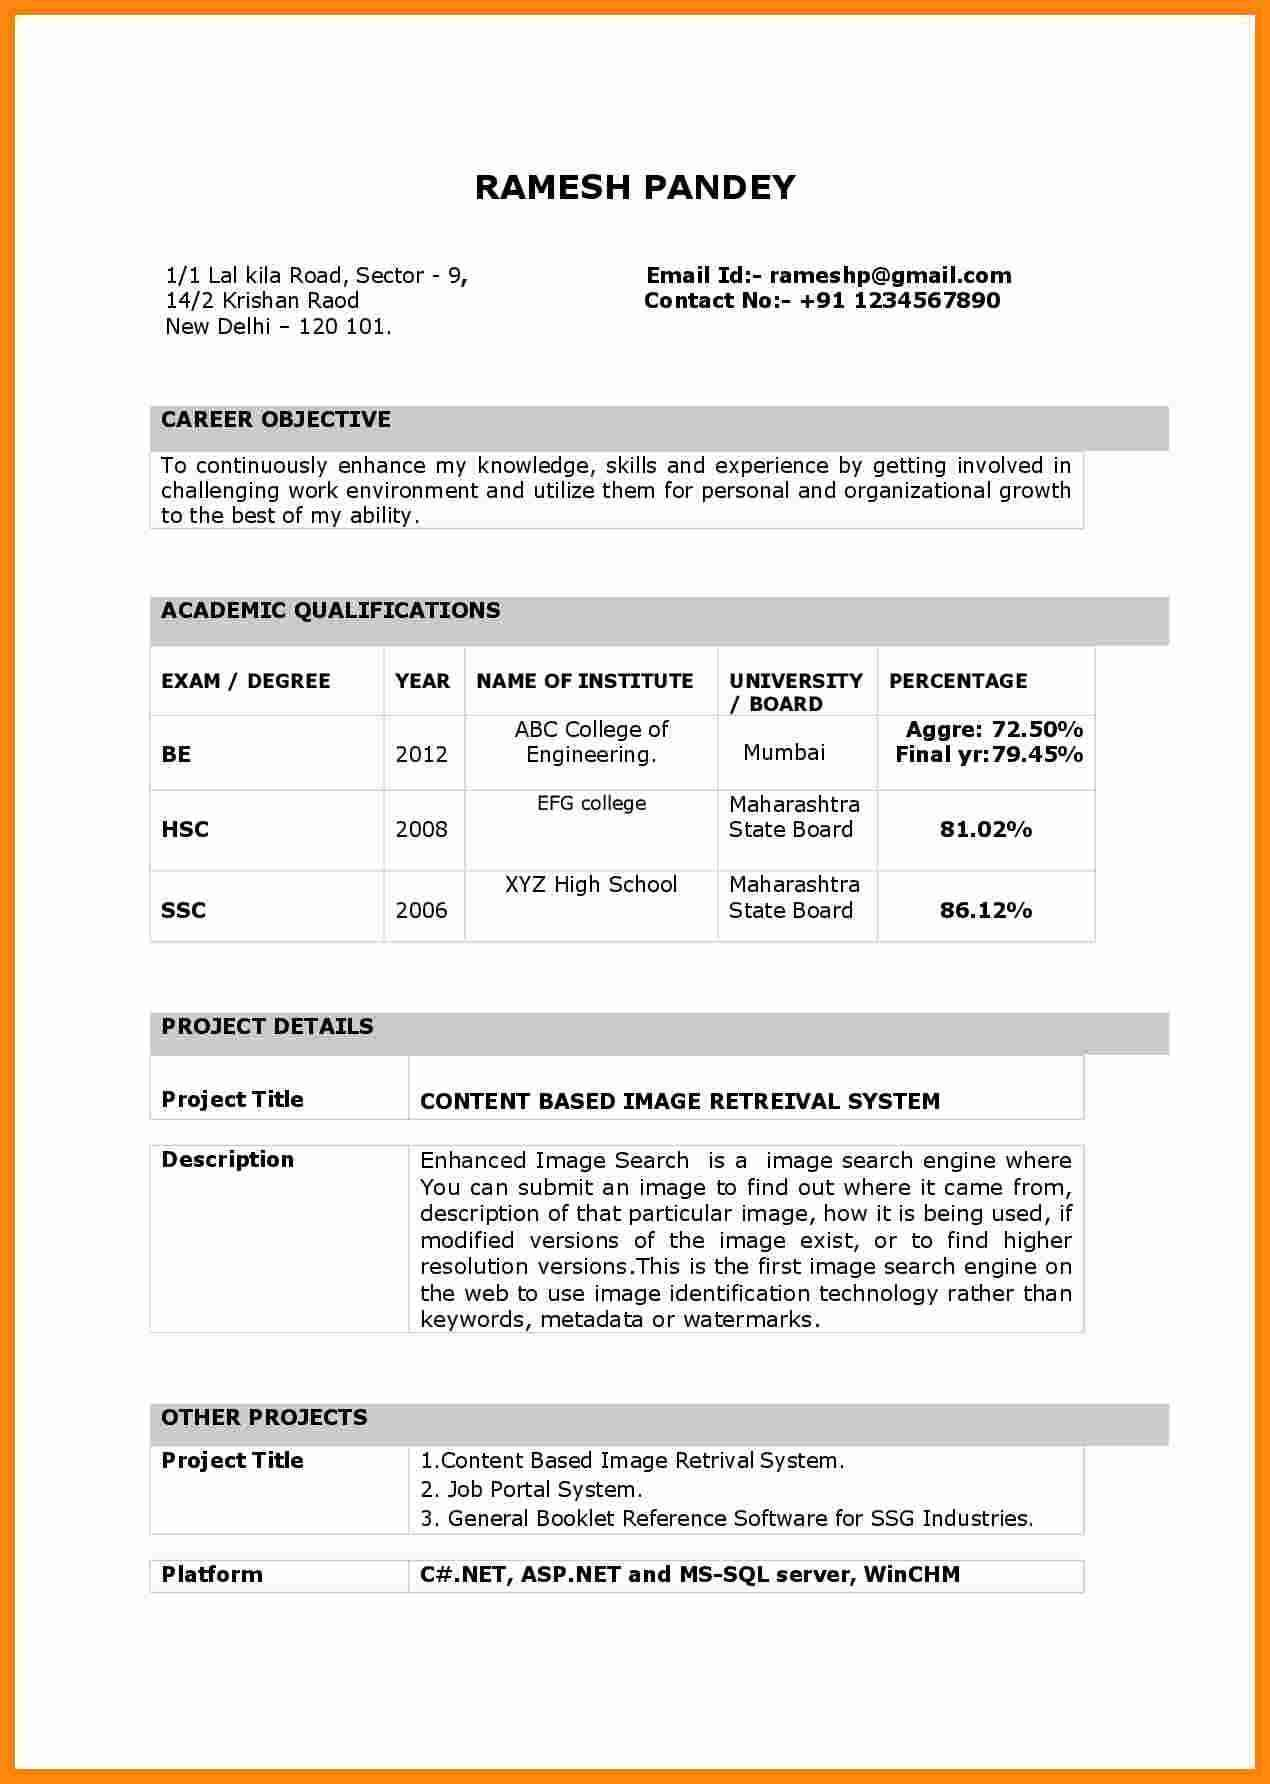 Biodata Sample For Job Free To Download Google Search Resume